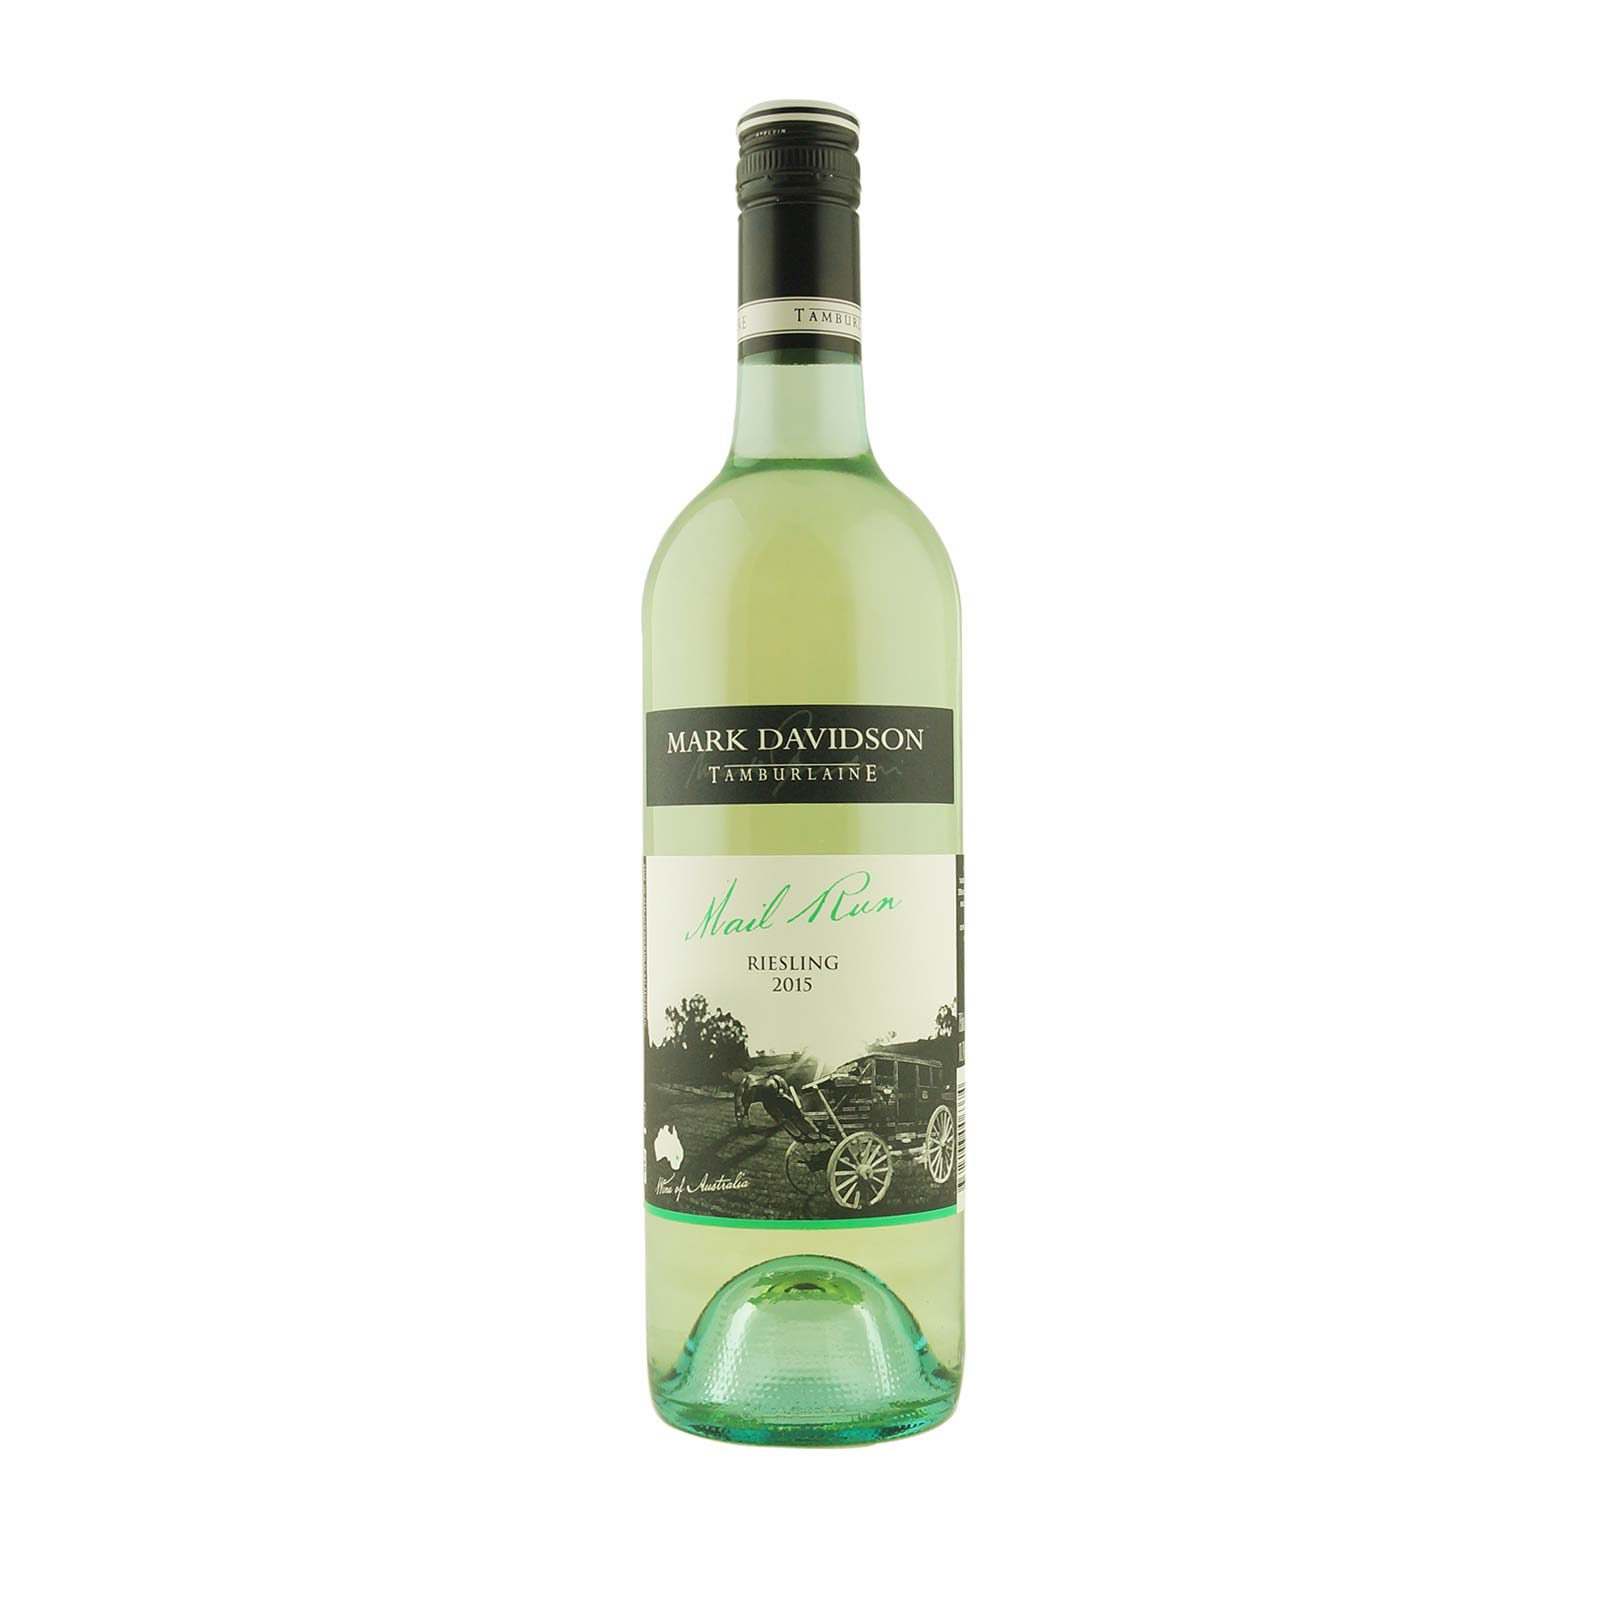 products-tamburlaine-mail-run-riesling-a